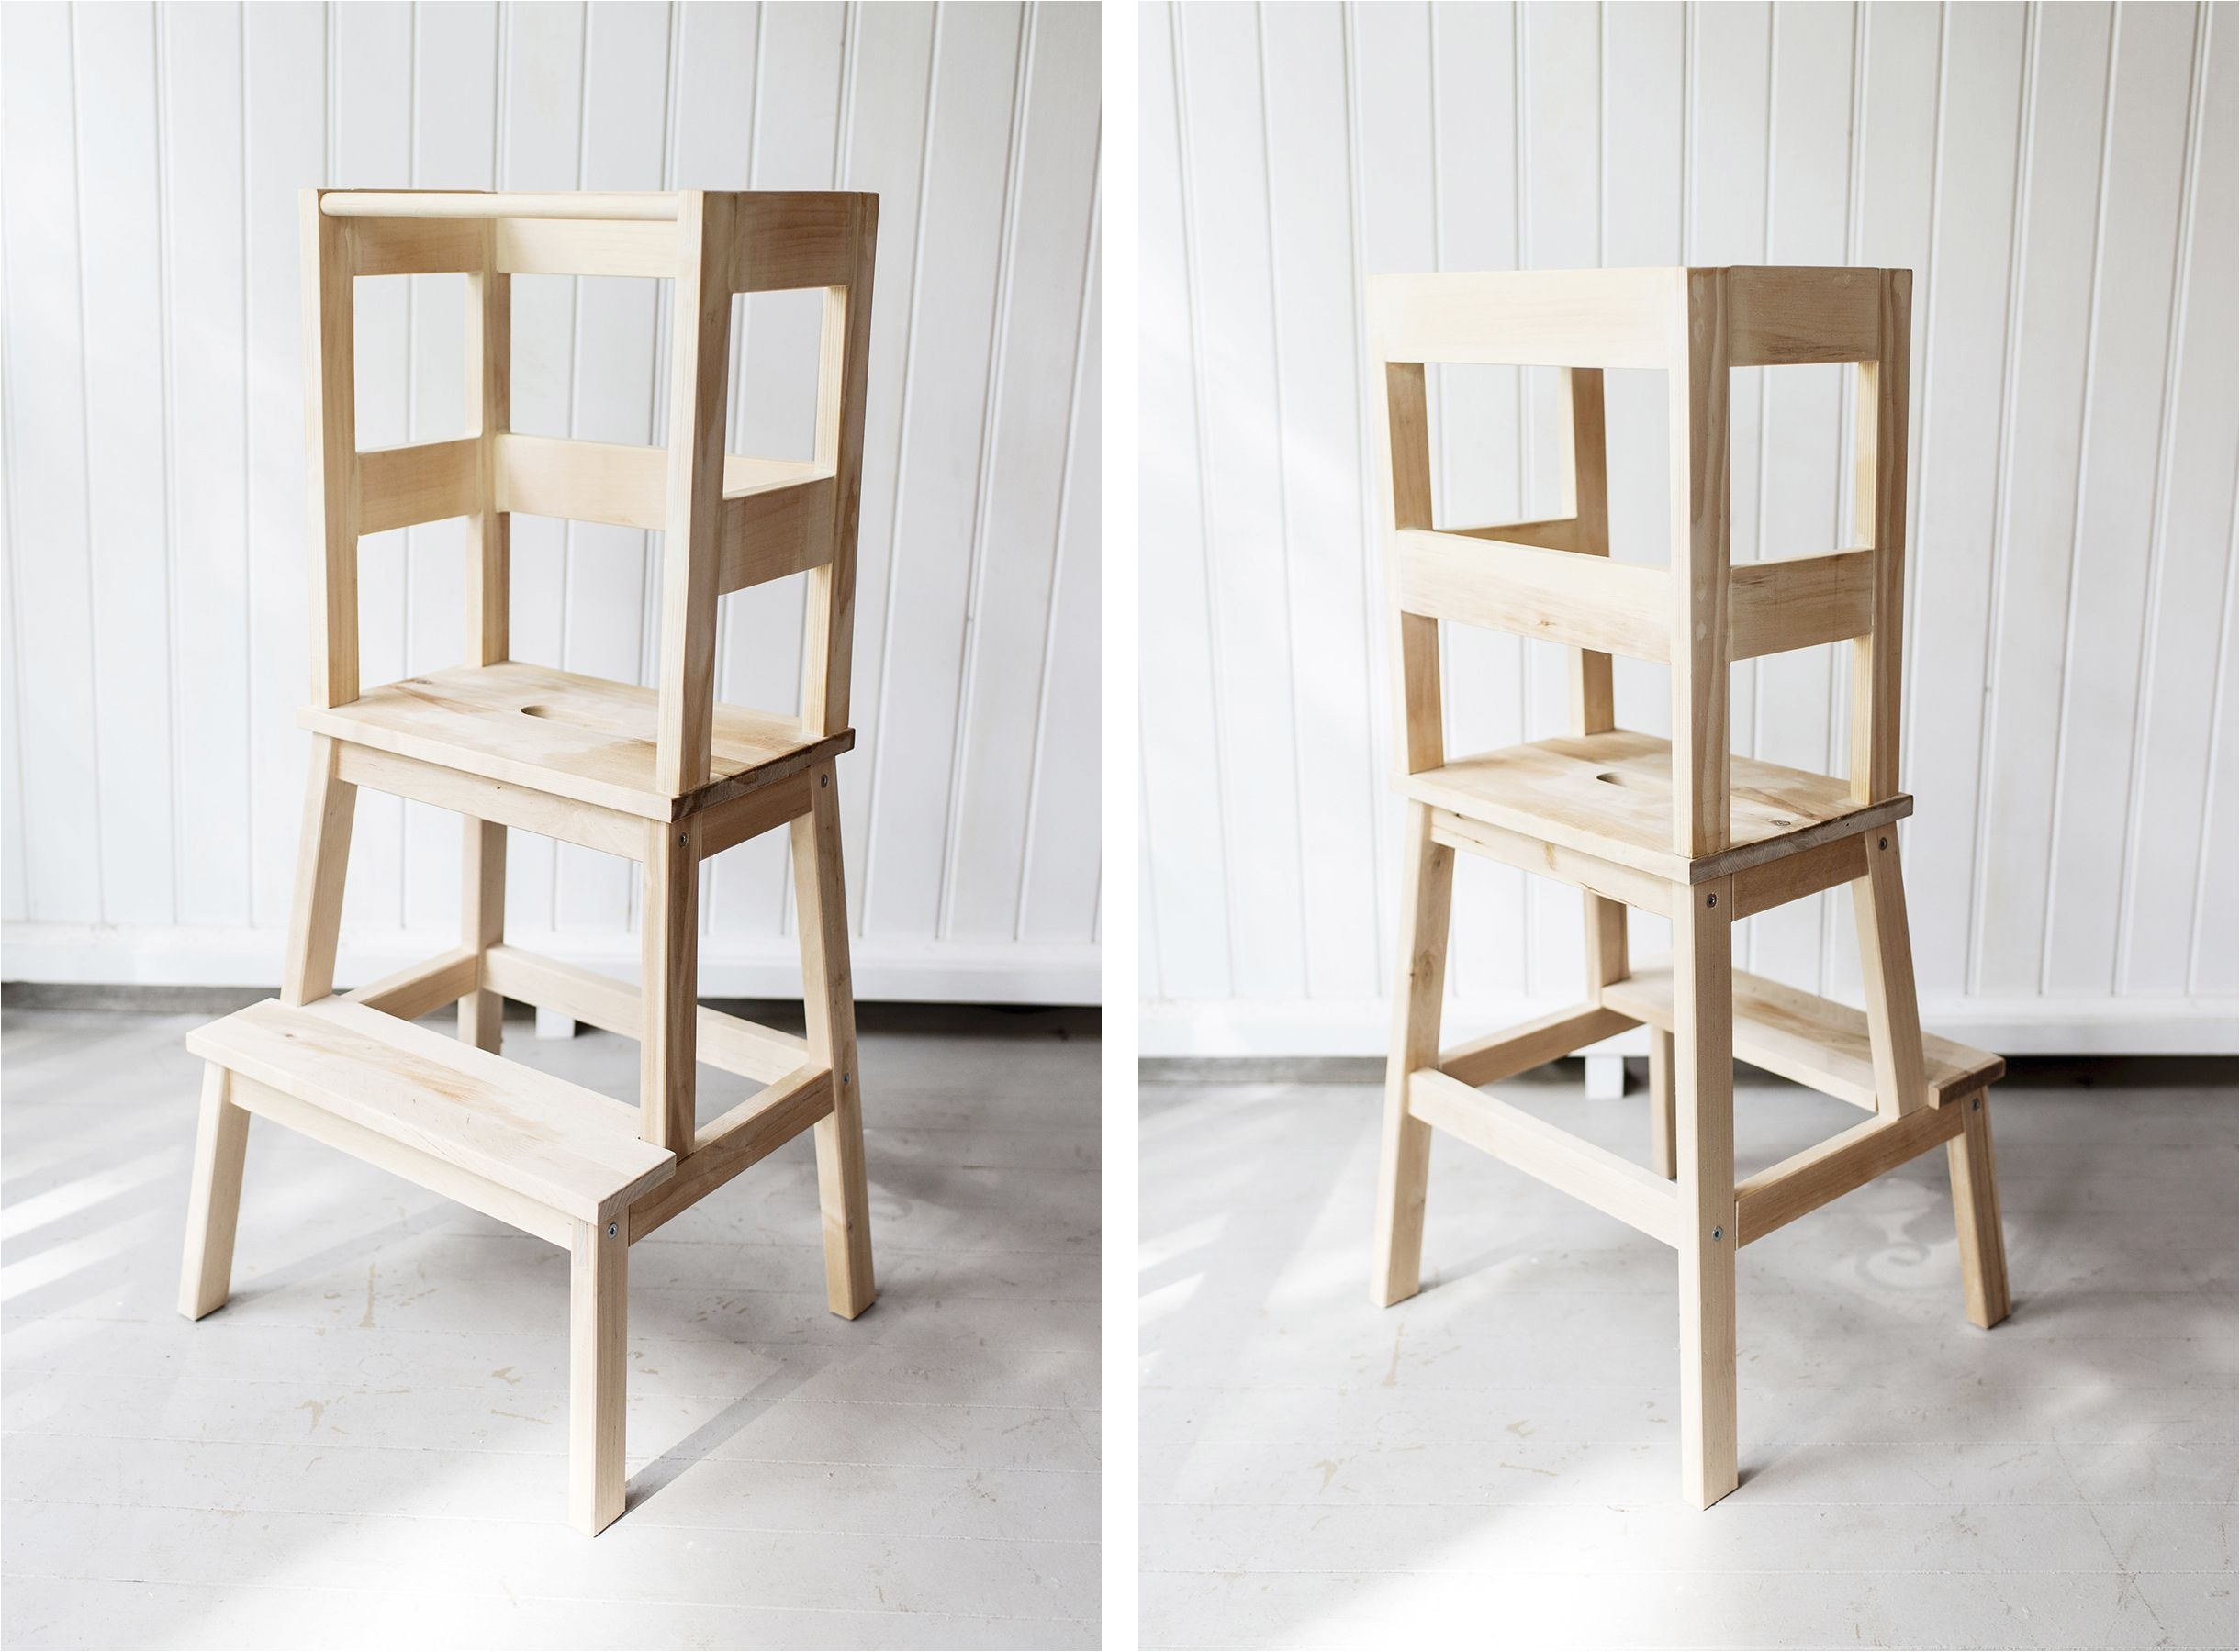 Ikea Childrens Wooden High Chair Ikea Hack toddler Learning tower Using A Bekvam Stool Tutorial